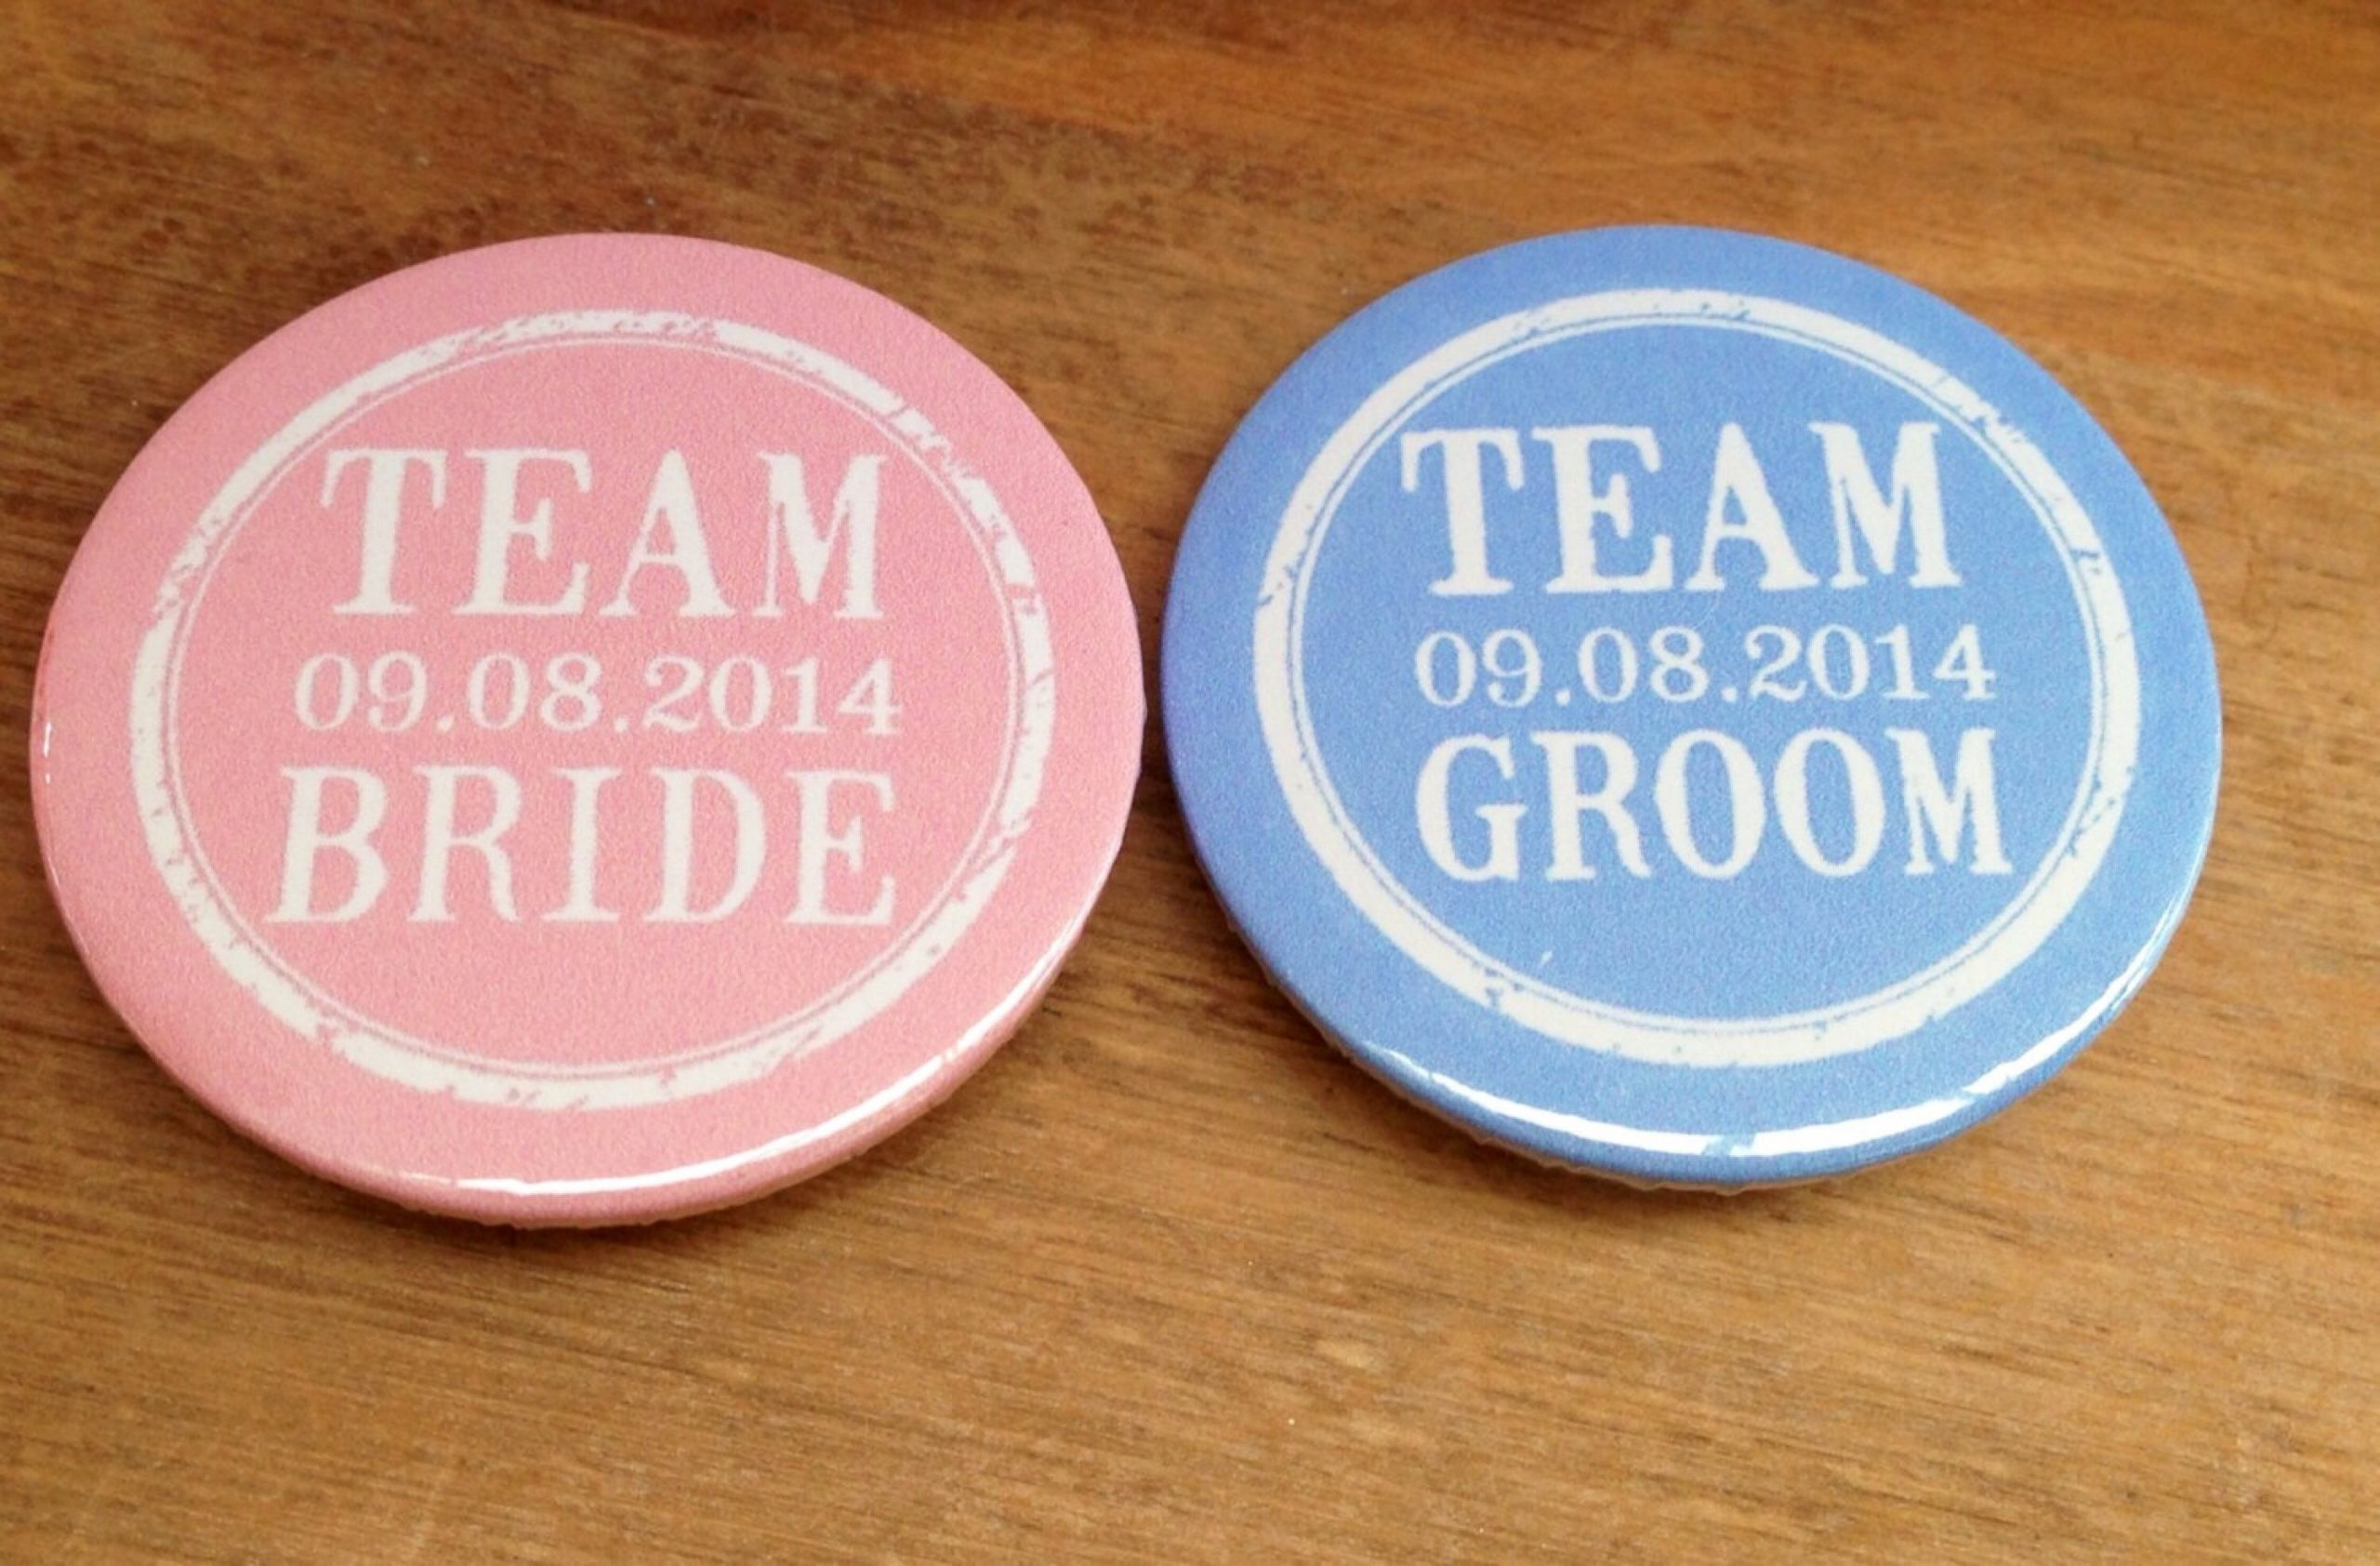 Personalised Team Bride and Groom badges